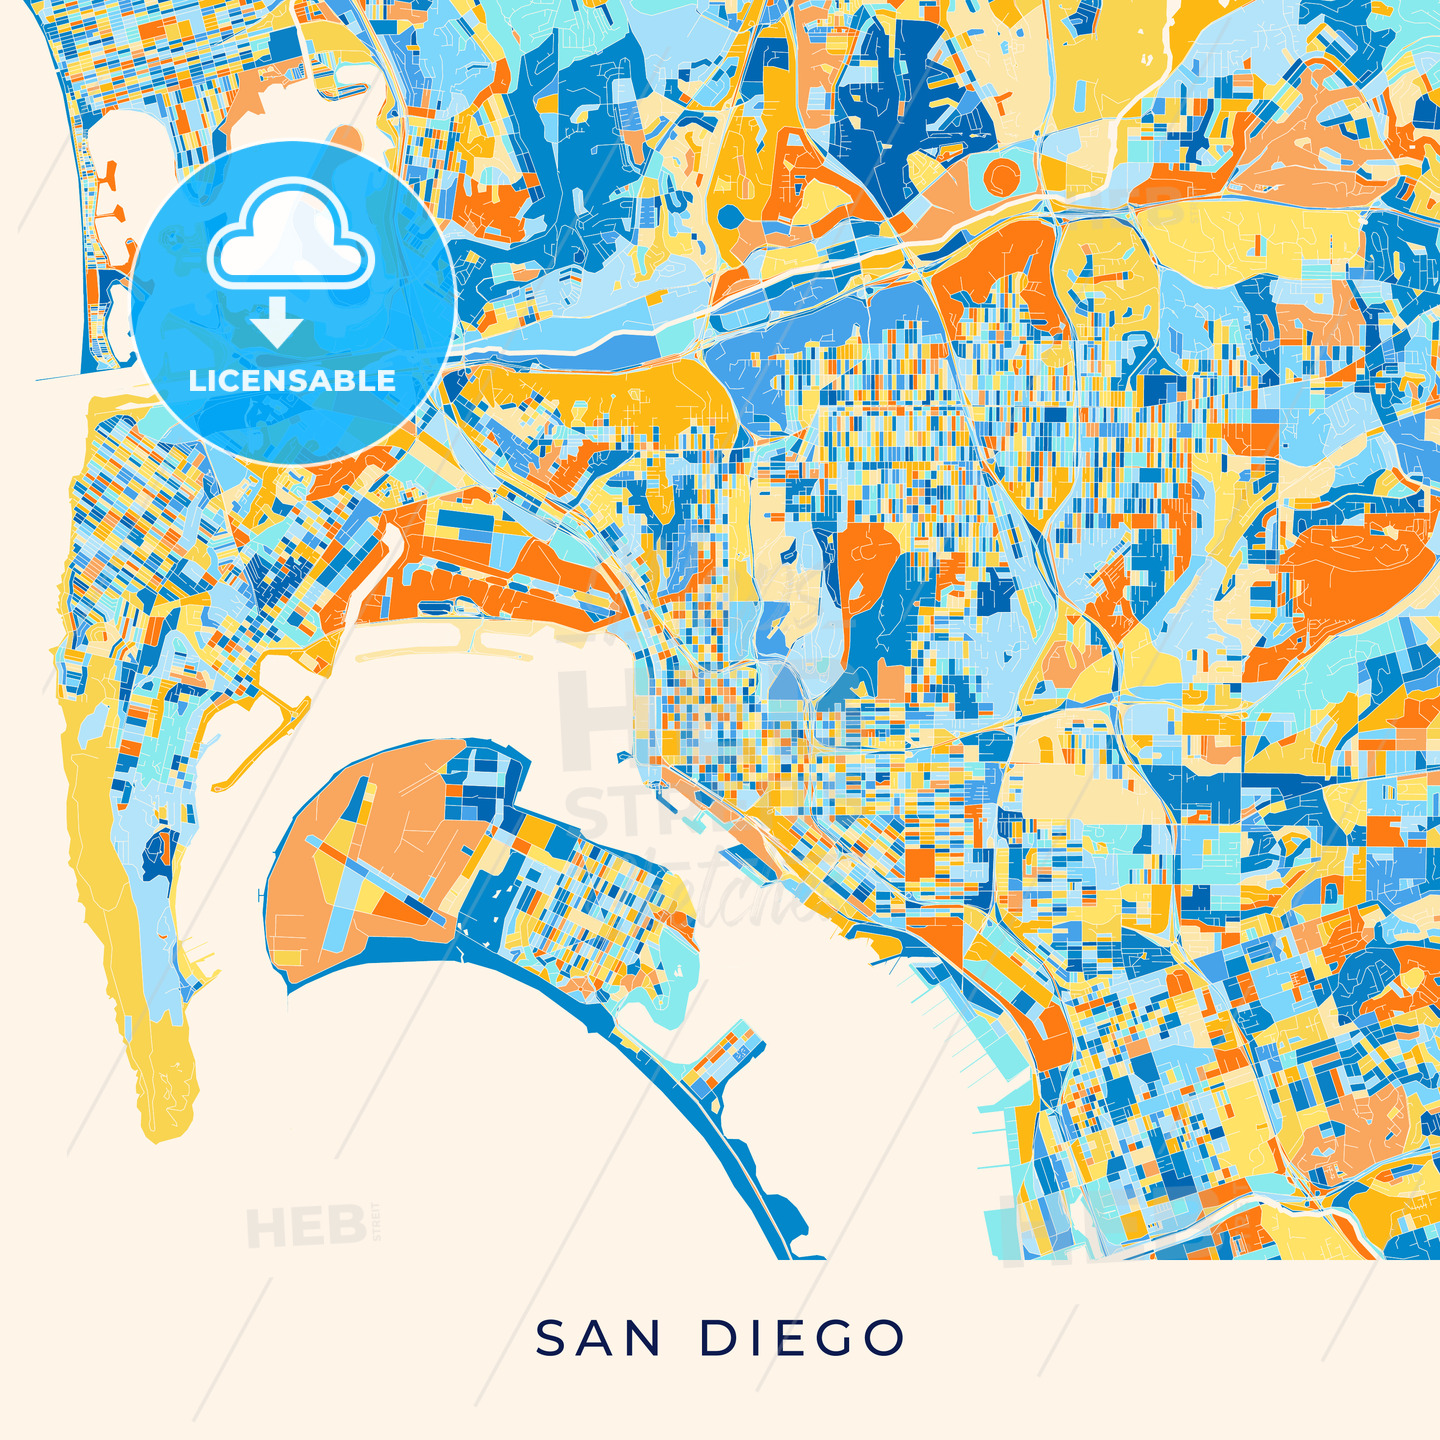 San Diego colorful map poster template